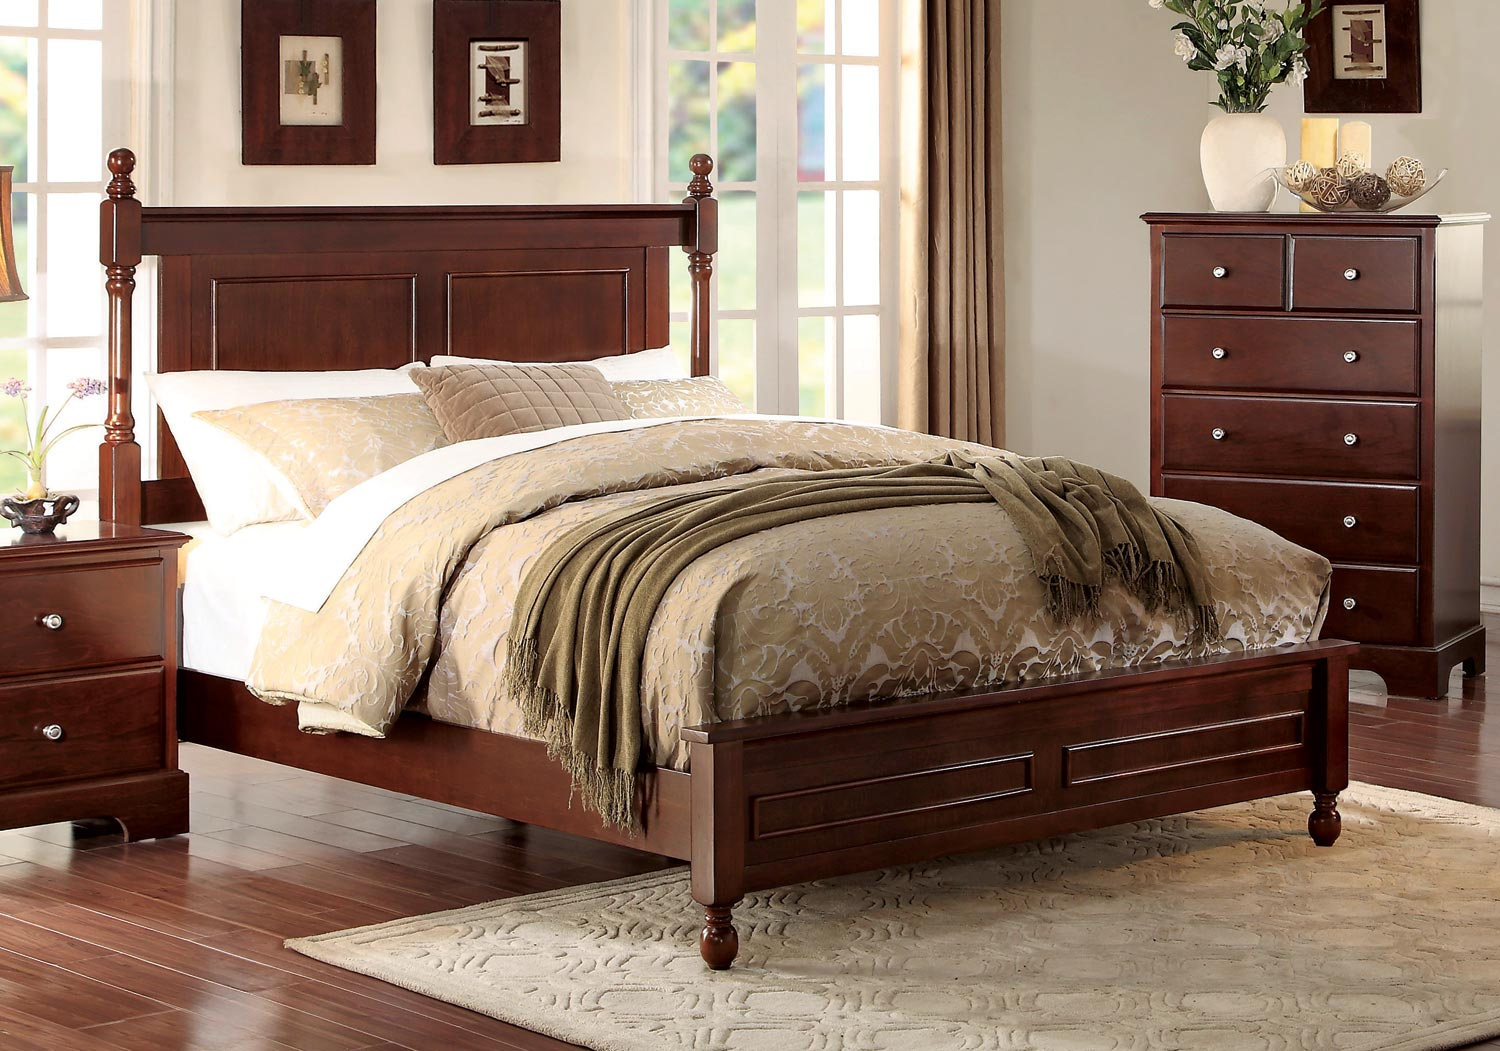 Homelegance Morelle Bed - Cherry